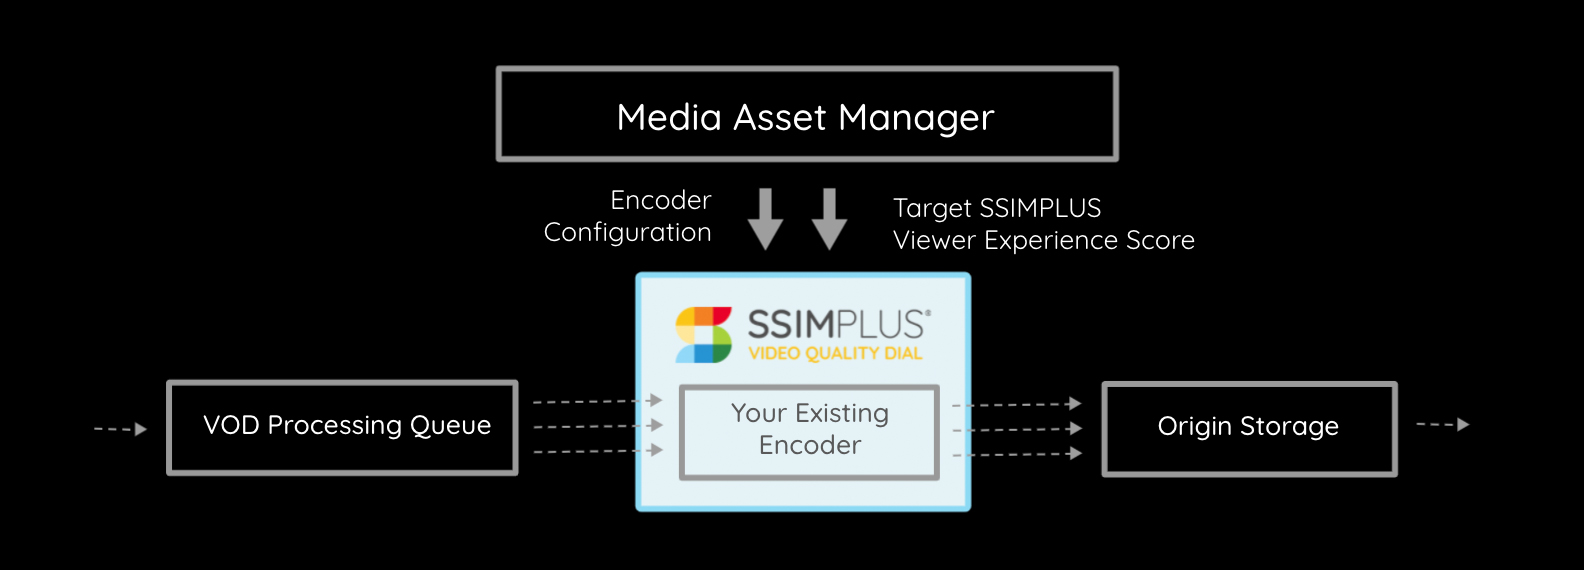 Diagram showing how VQ Dial works with your existing encoder in your media asset manager.